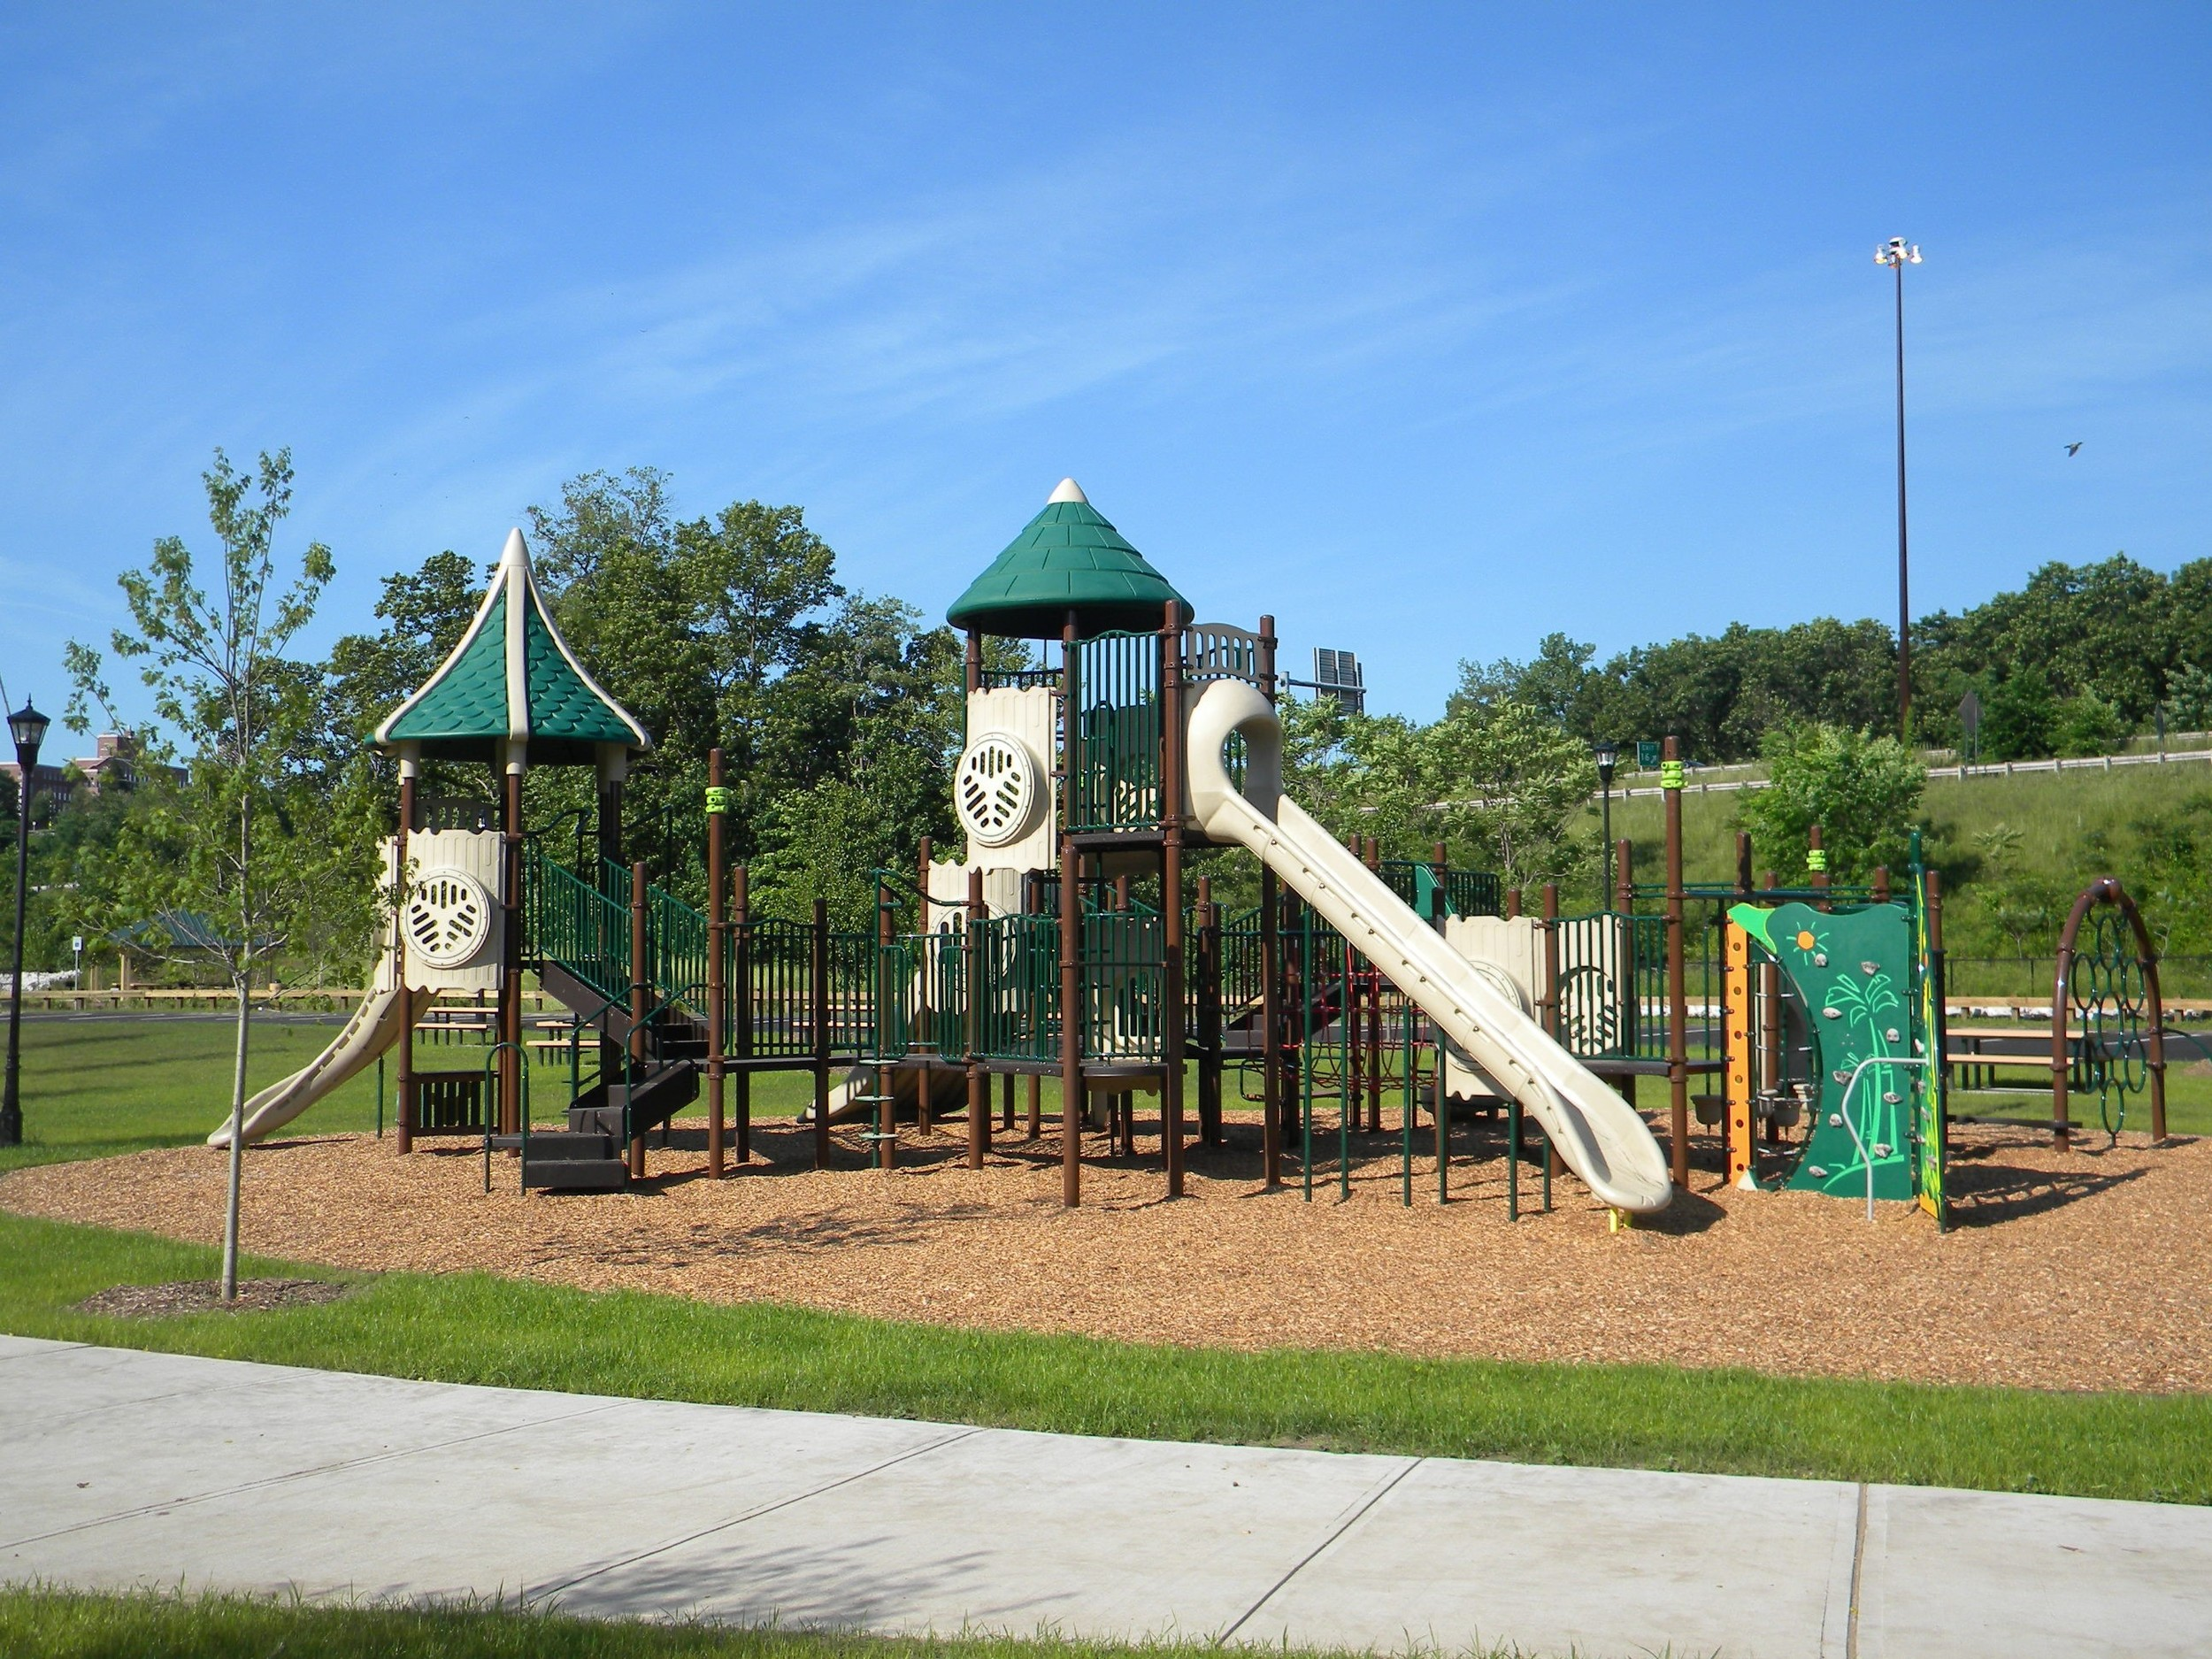 Play structure in kids playground in Community Fields Park, Holyoke, MA